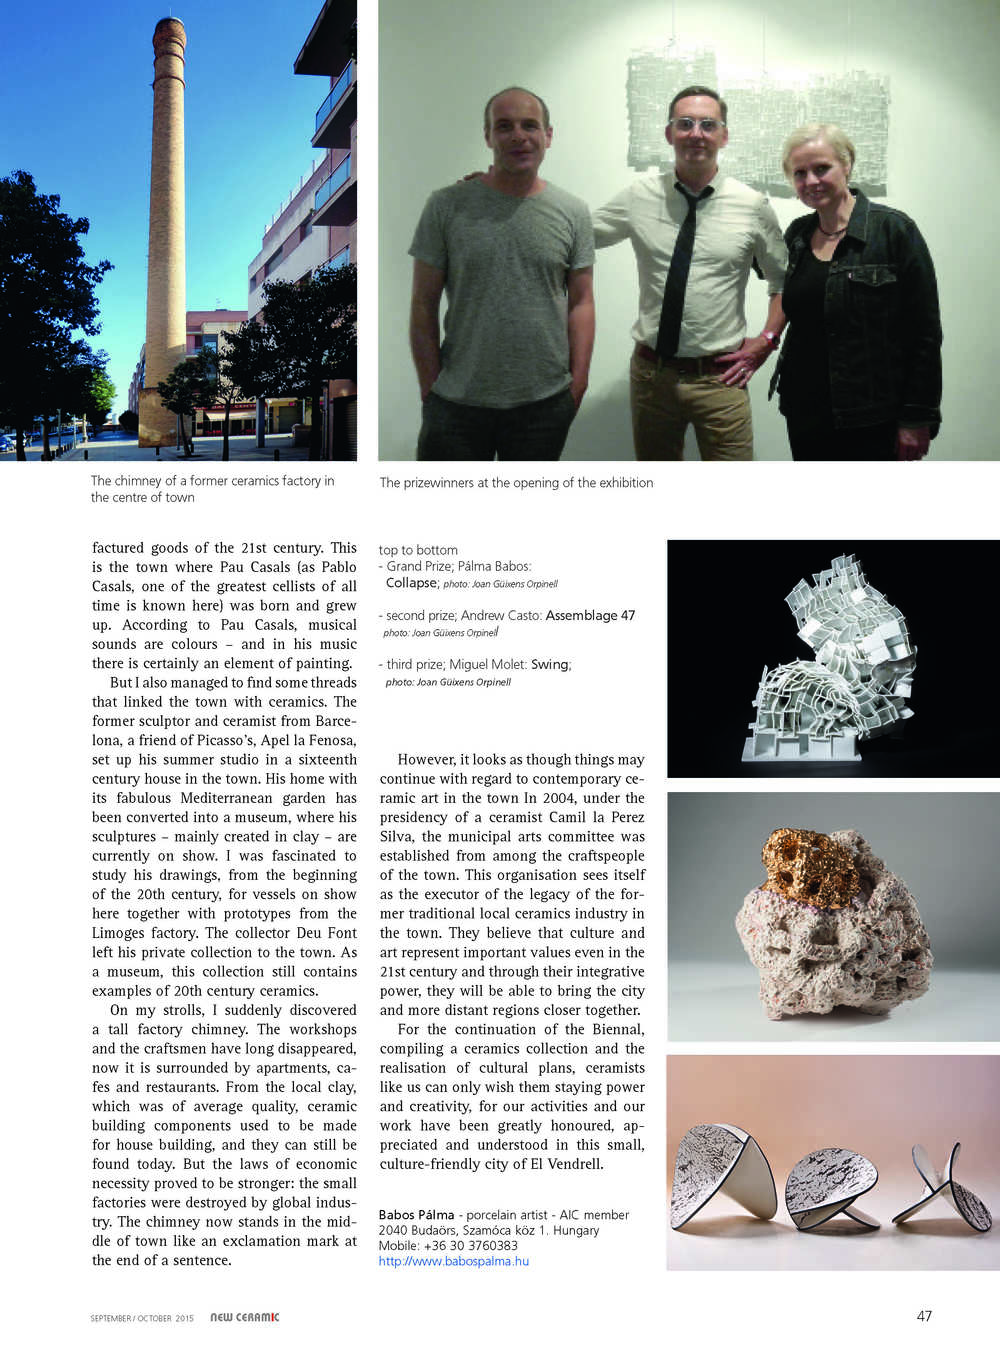 Ne  w Ceramic , September/October 2015 issue.